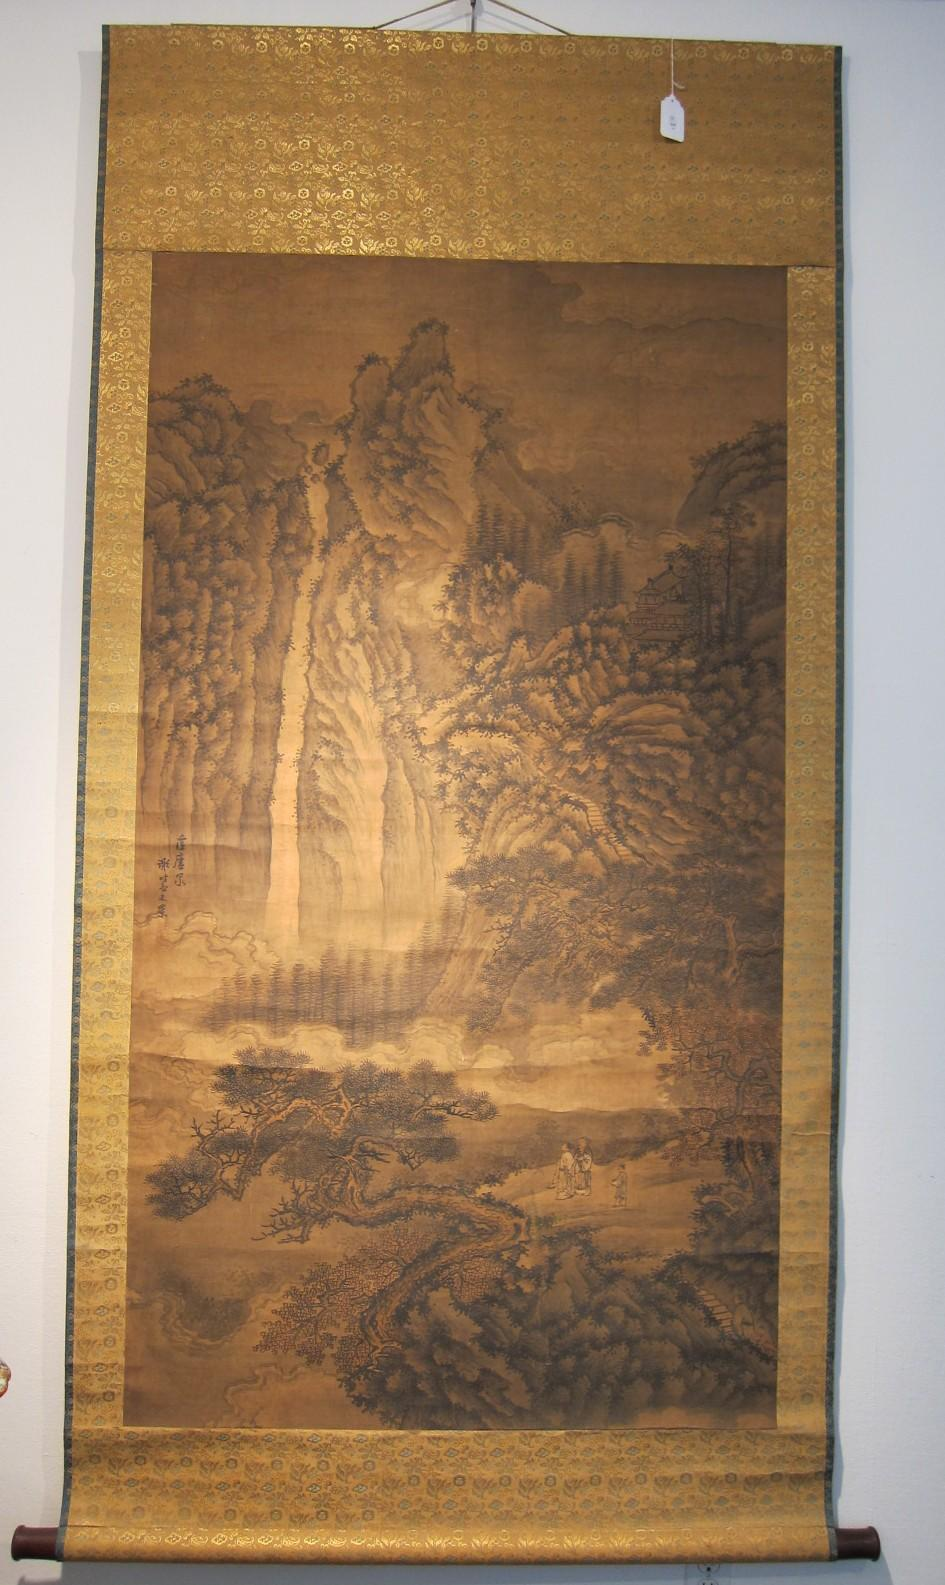 After Xie Shichen (19th century)  Waterfall Landscape